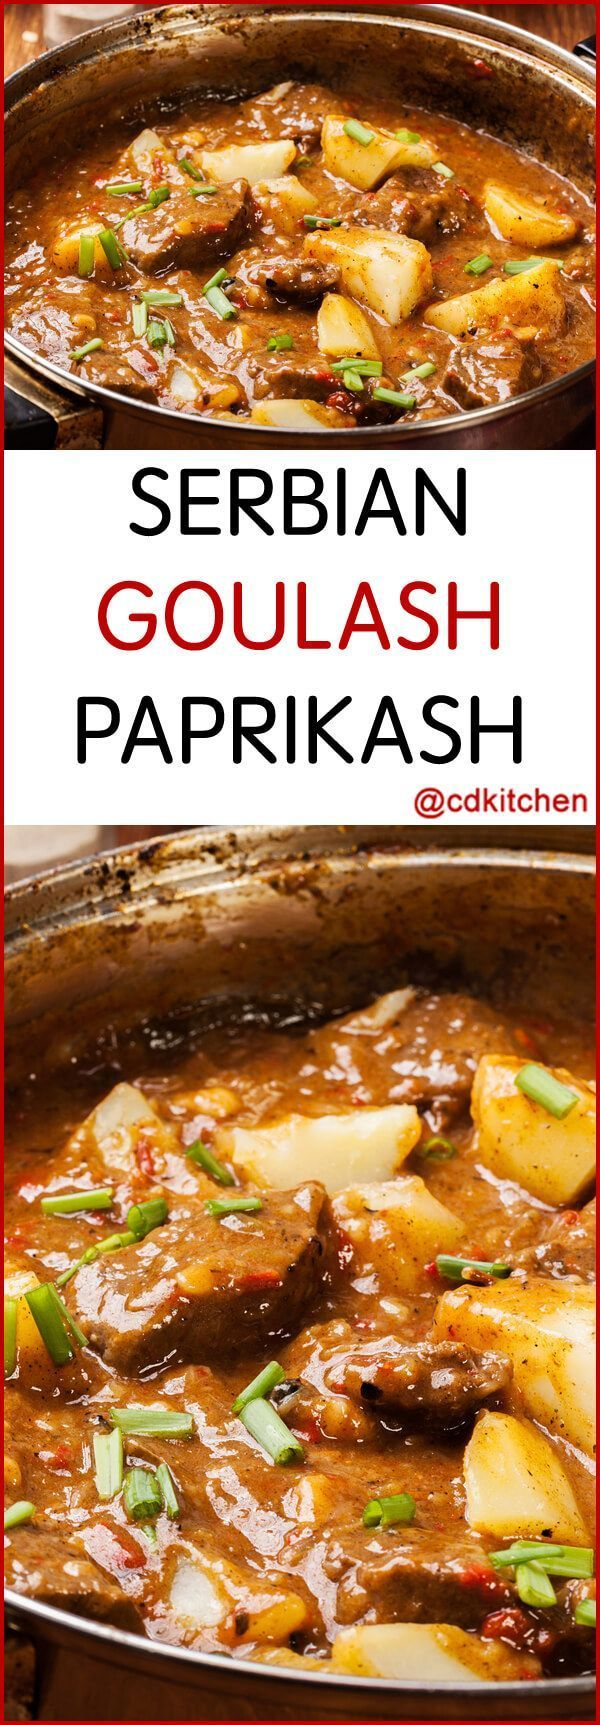 Serbian Goulash-Paprikash - Hard to pronounce but easy to make. Enjoy the tender lamb simmered with the worldly spice of paprika and hearty potatoes. Add a red chili to make this southeastern European soup shine. | CDKitchen.com